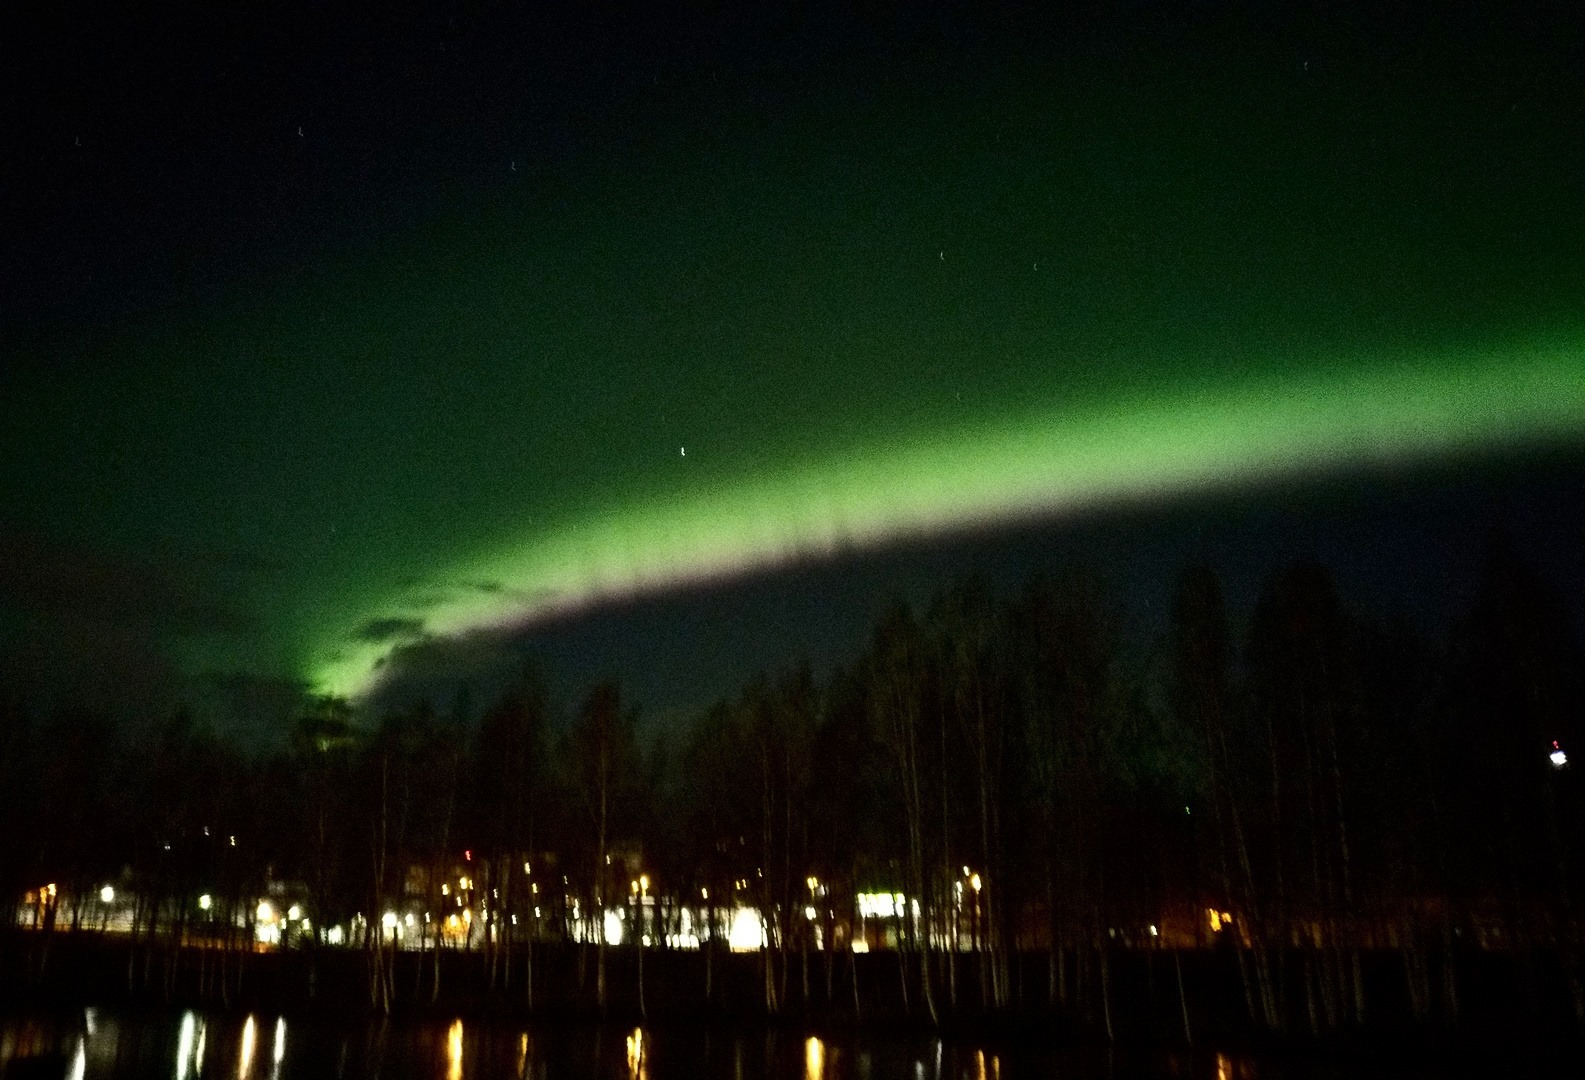 A blurry and crappy photo of northern lights. But hey, it was taken by me, from my backyard!